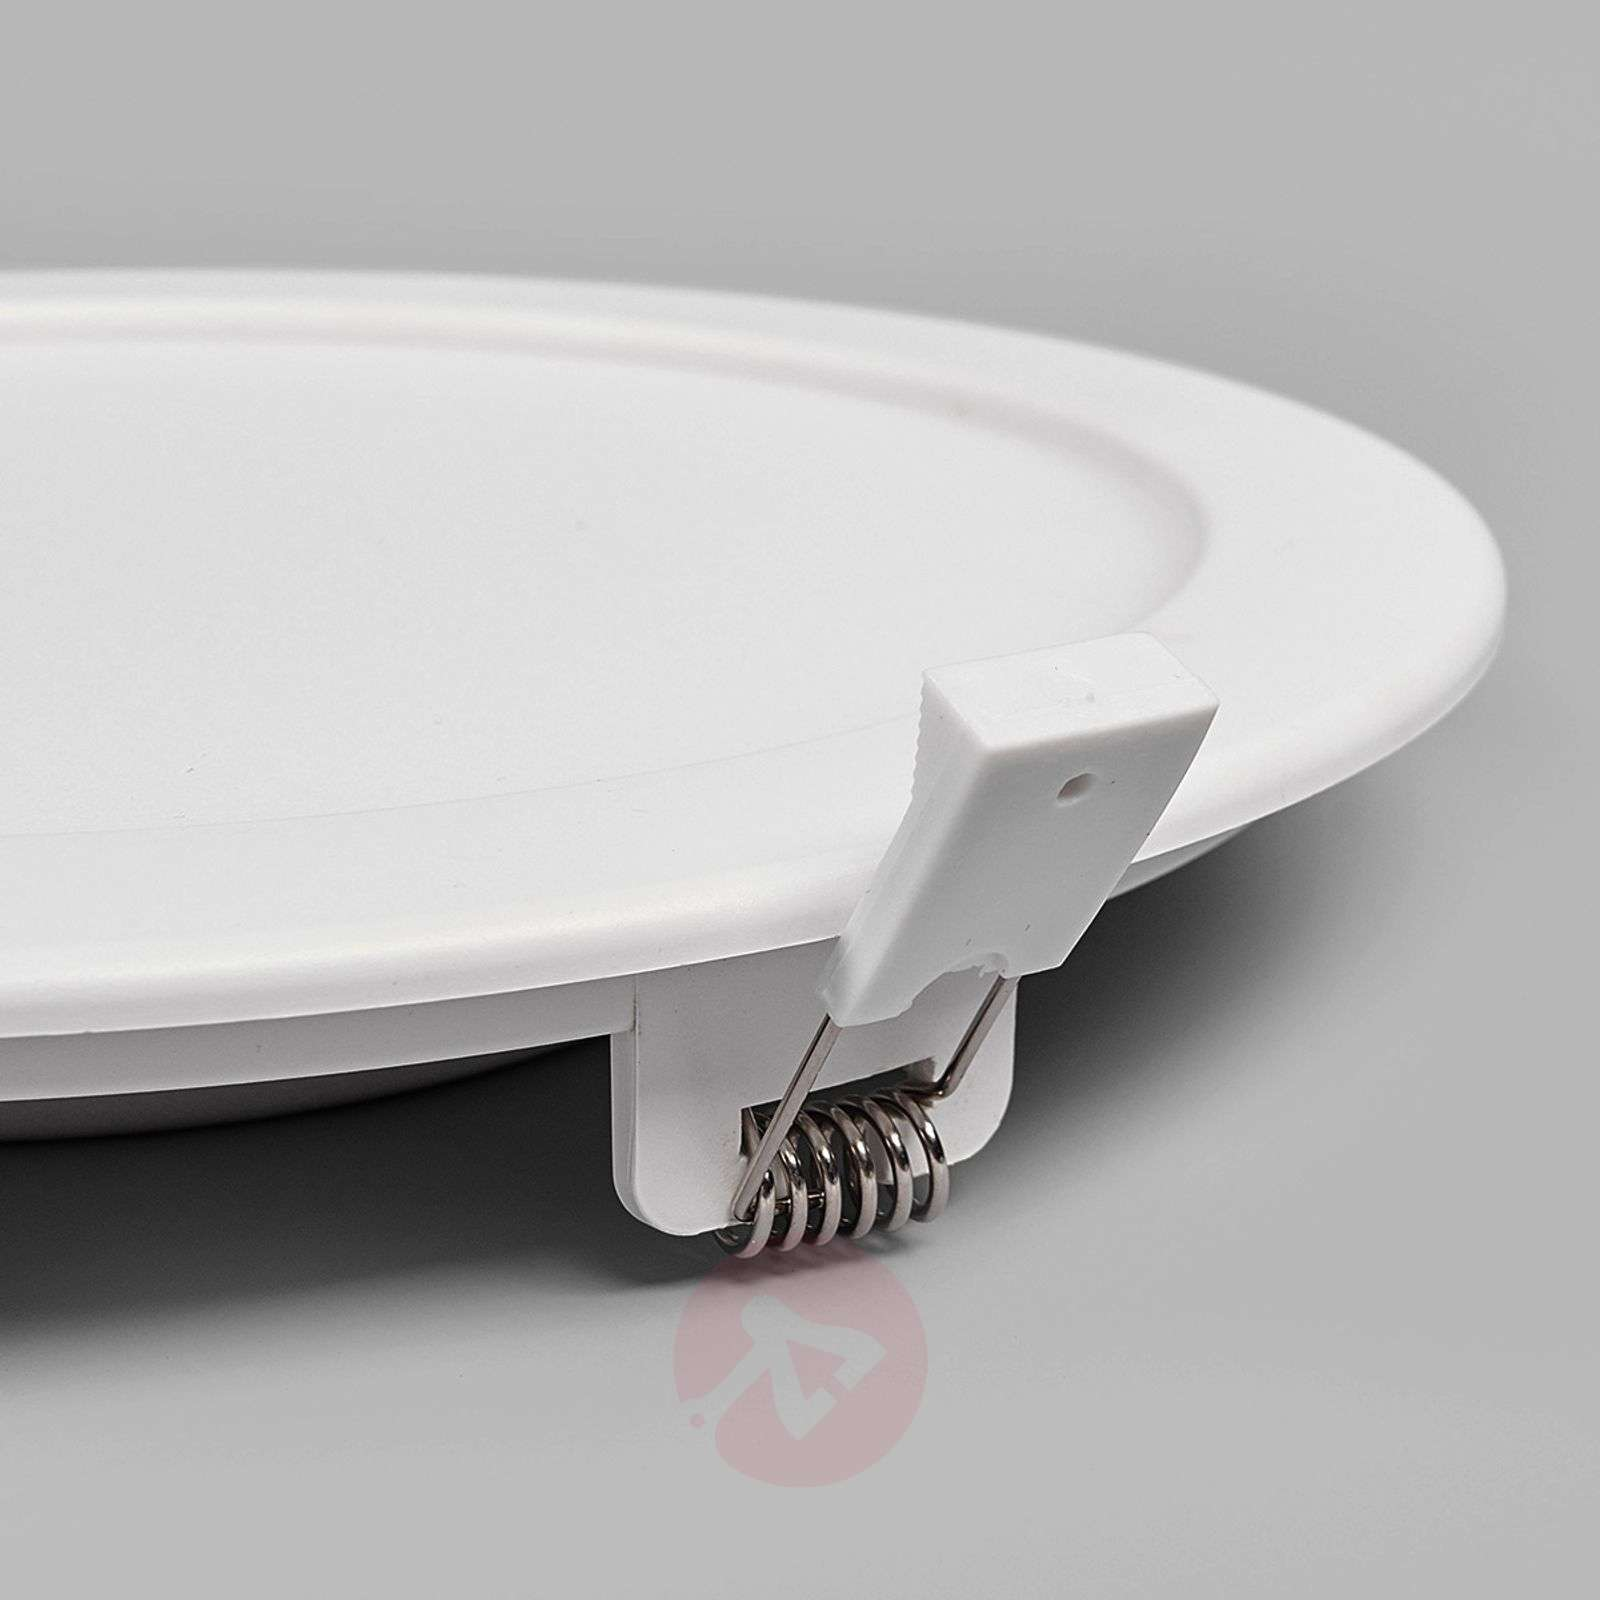 Bathroom recessed light Editha with LEDs, 18 W-9978015-013